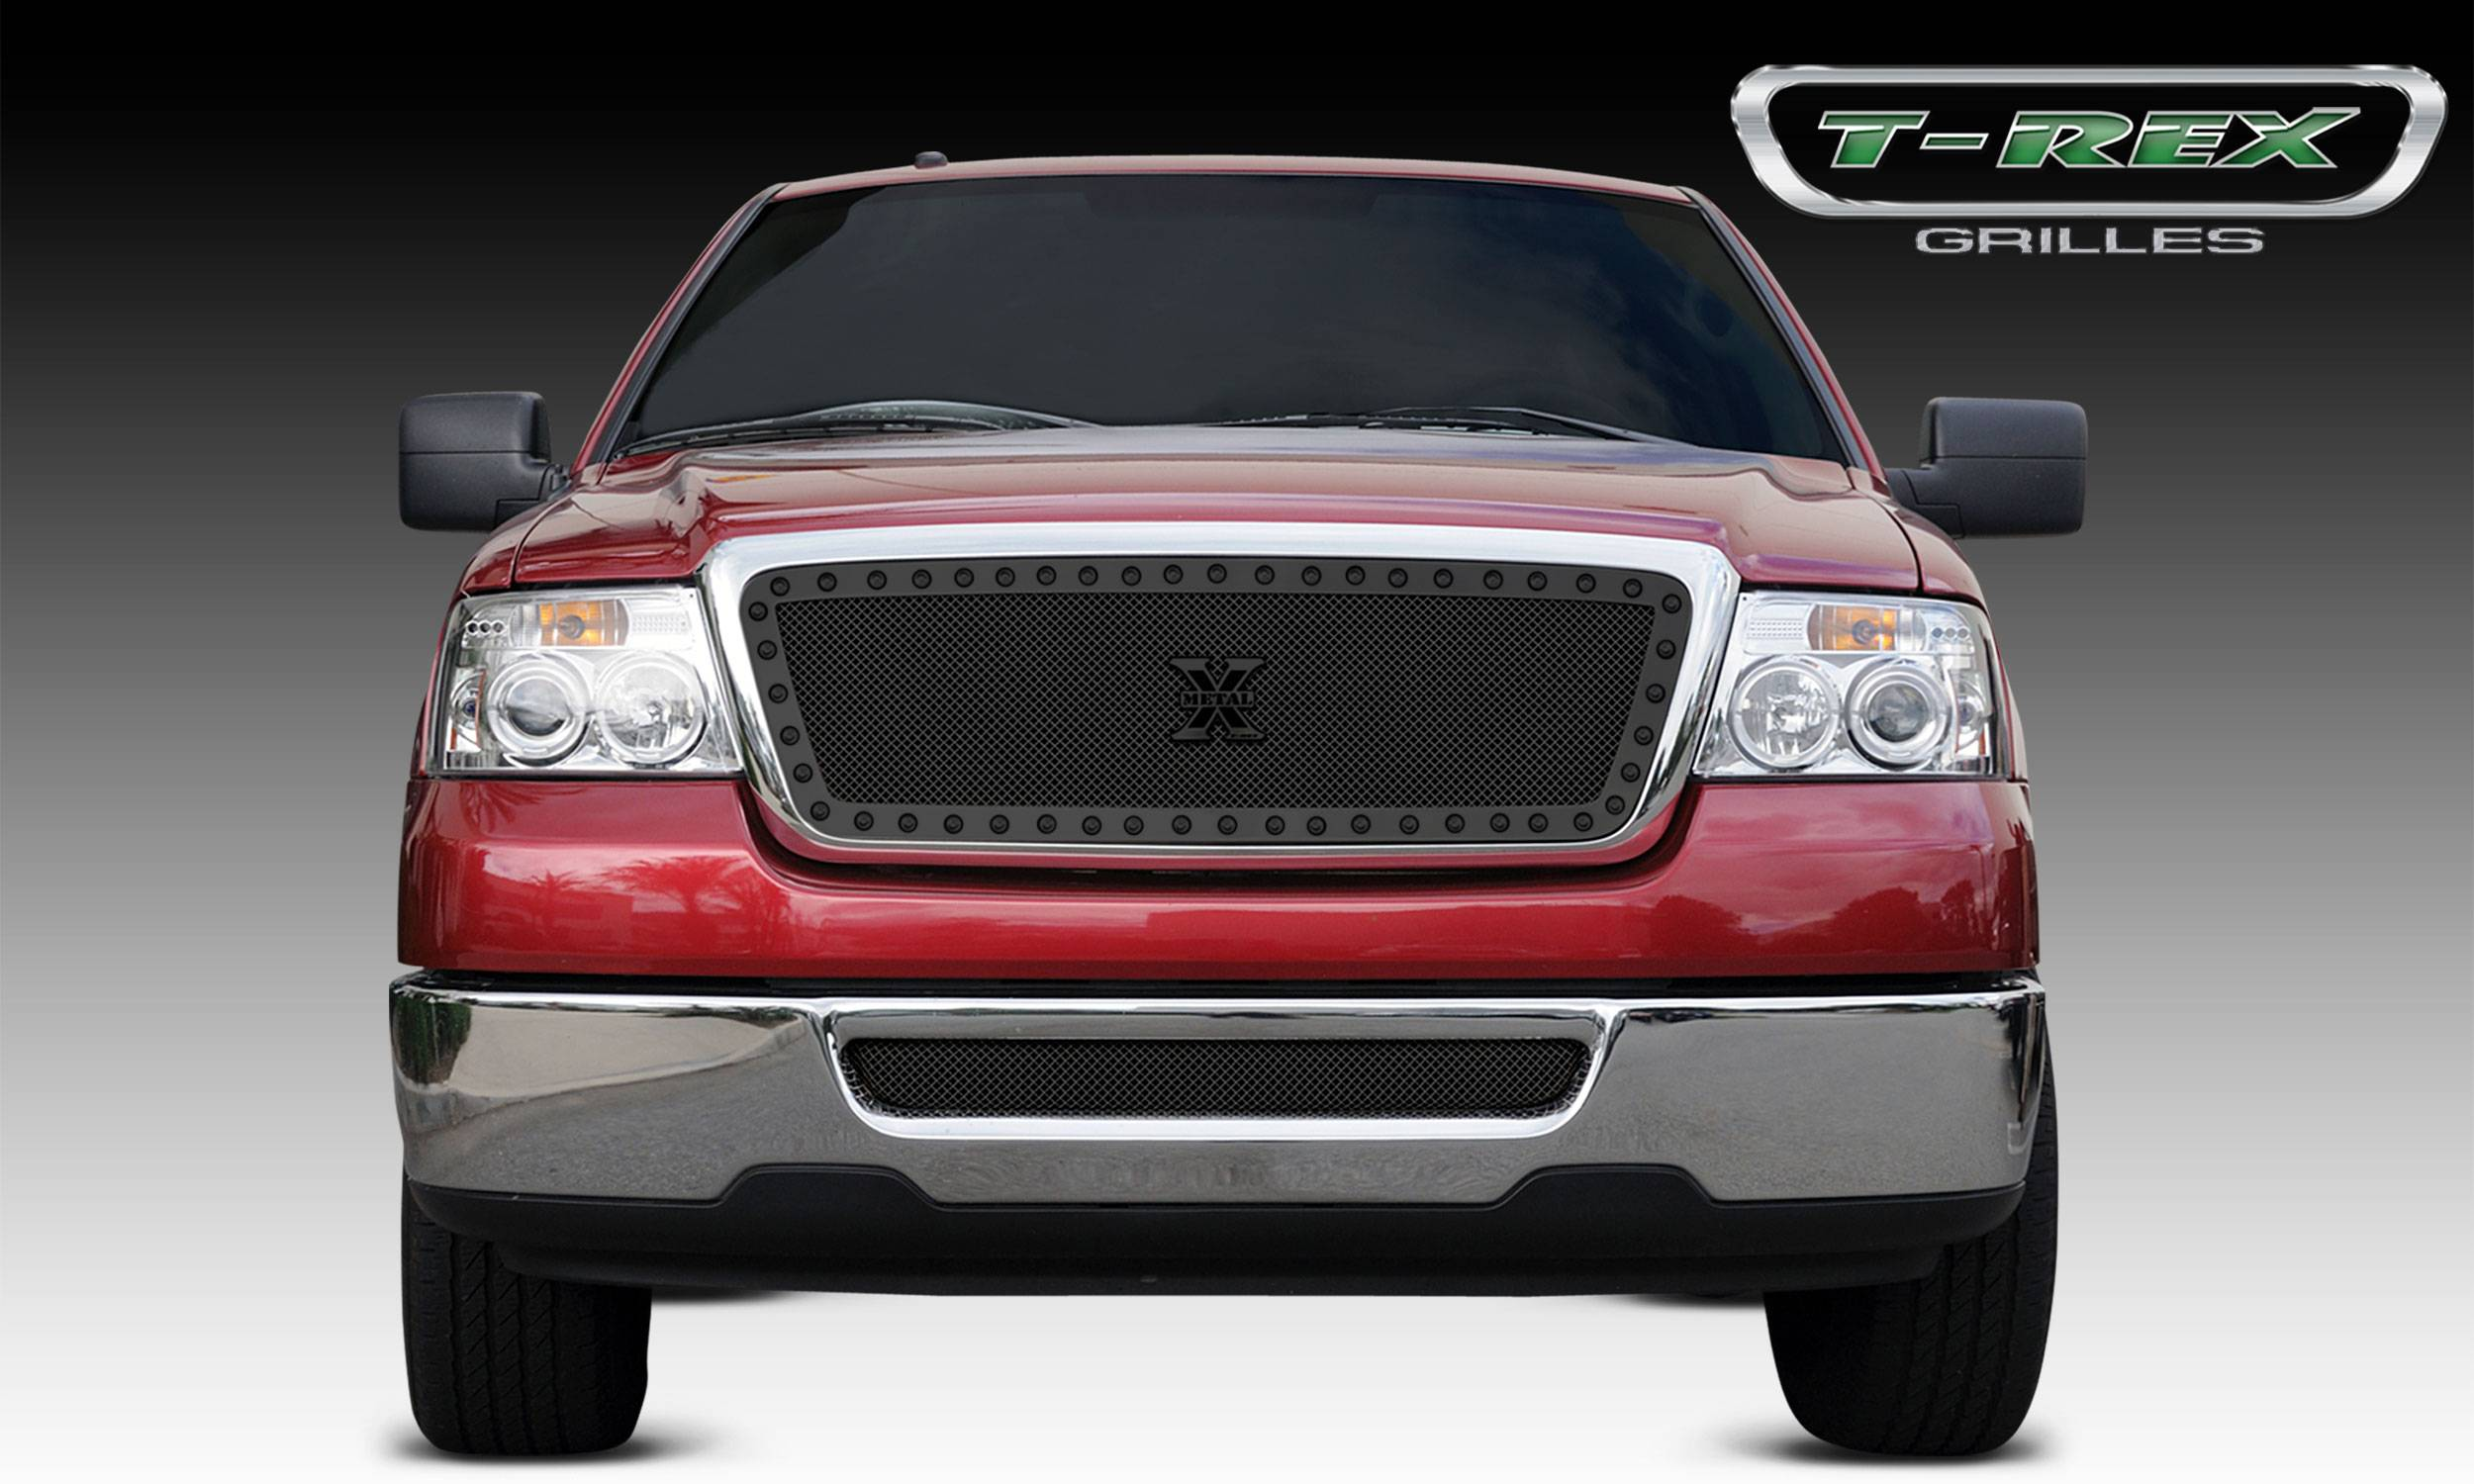 T-REX Grilles - Ford F-150 All Models X-METAL Series Black Studded Main Grille - ALL Black - Pt # 6715561-BR